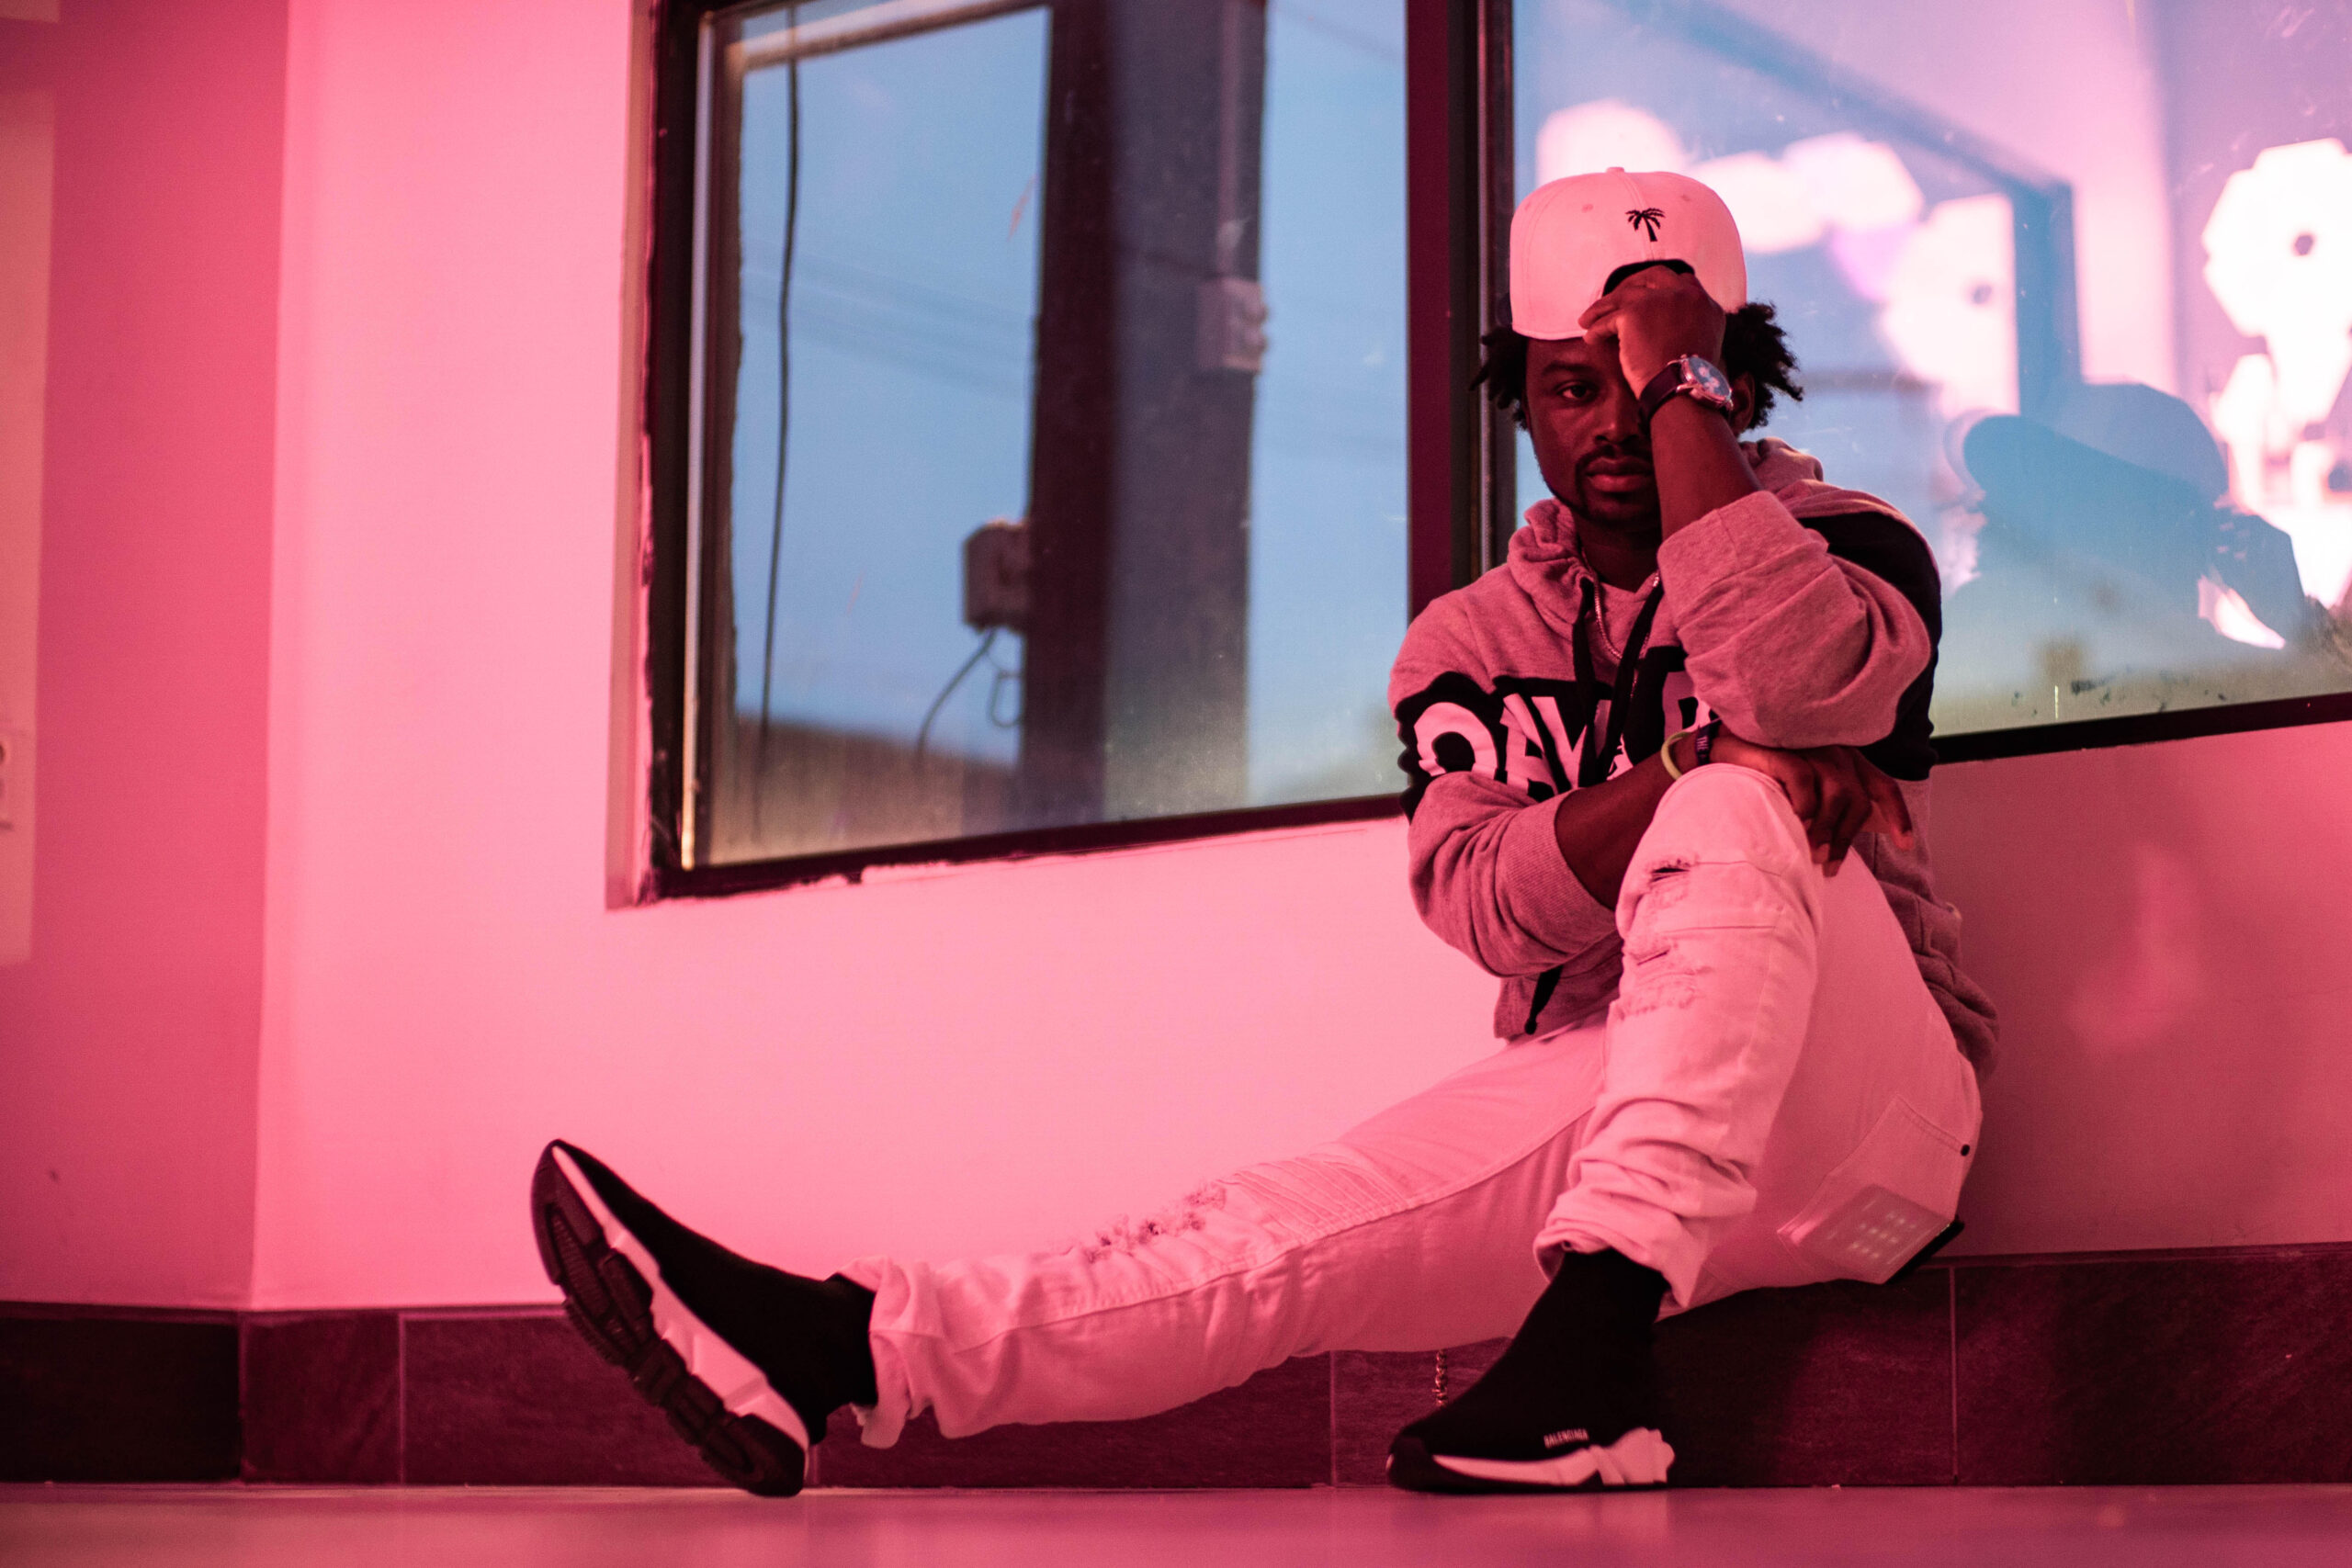 DJ Yemi Talks West Virginia Music, Working With The Stars, and What's Next